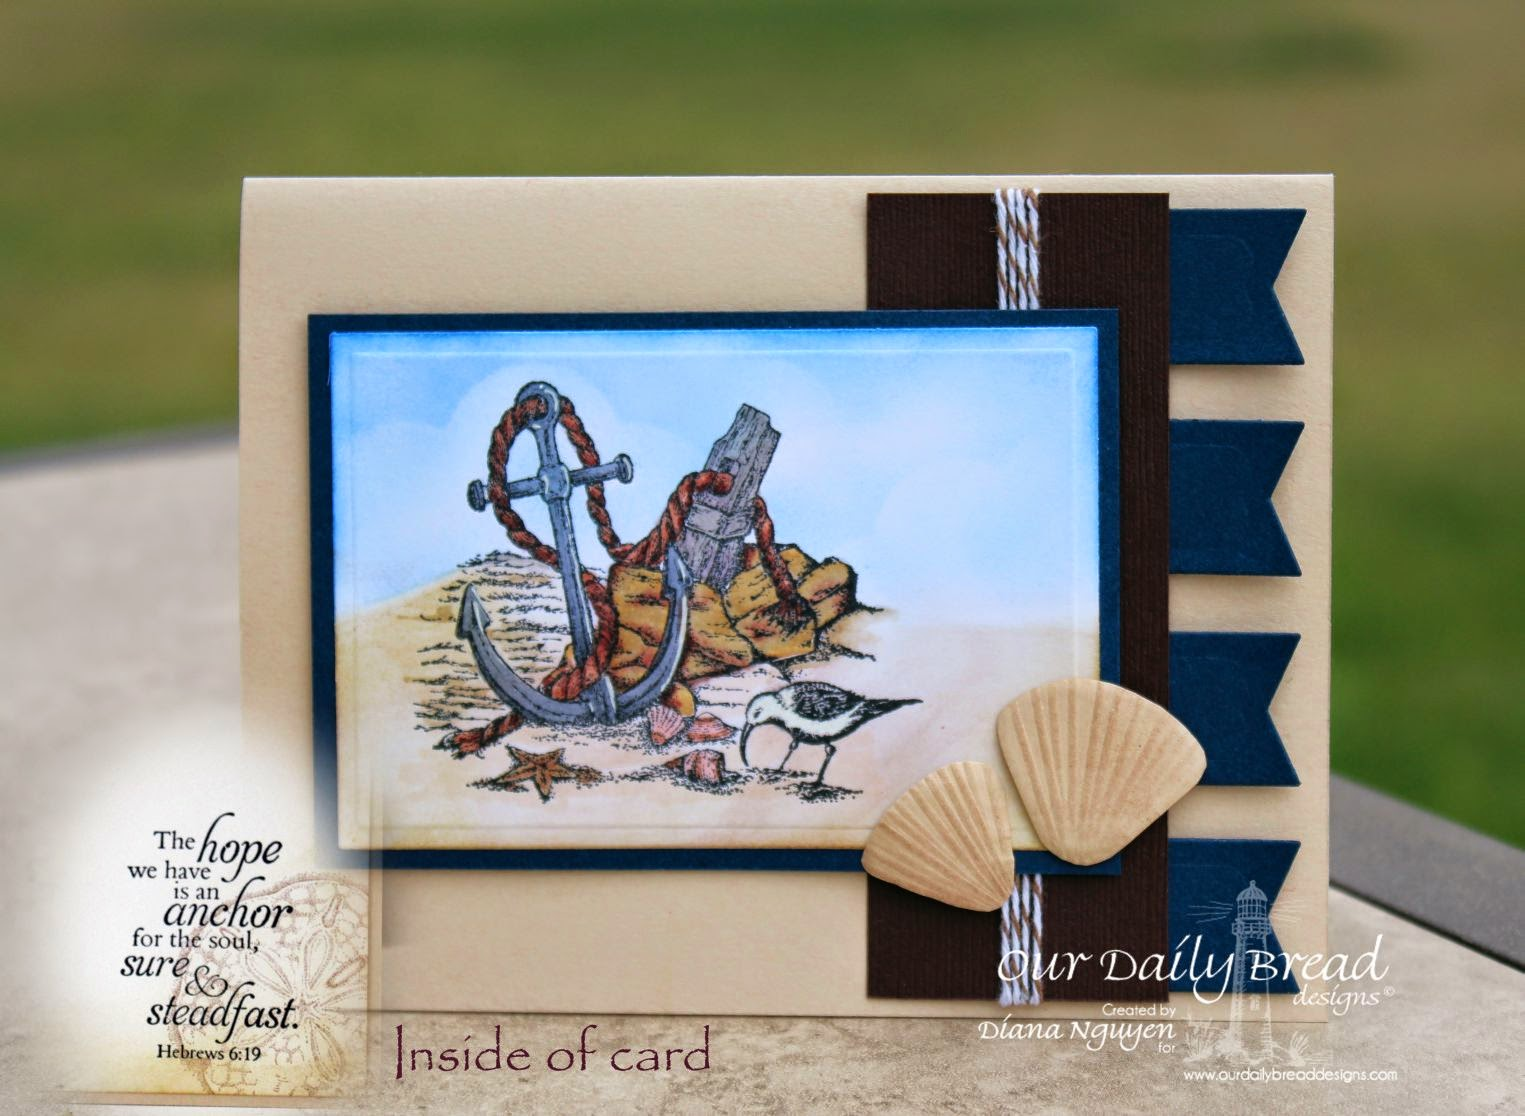 Our Daily Bread Designs, Anchor Set, Anchor the Soul, Ocean Treasures, Designed by Diana Nguyen